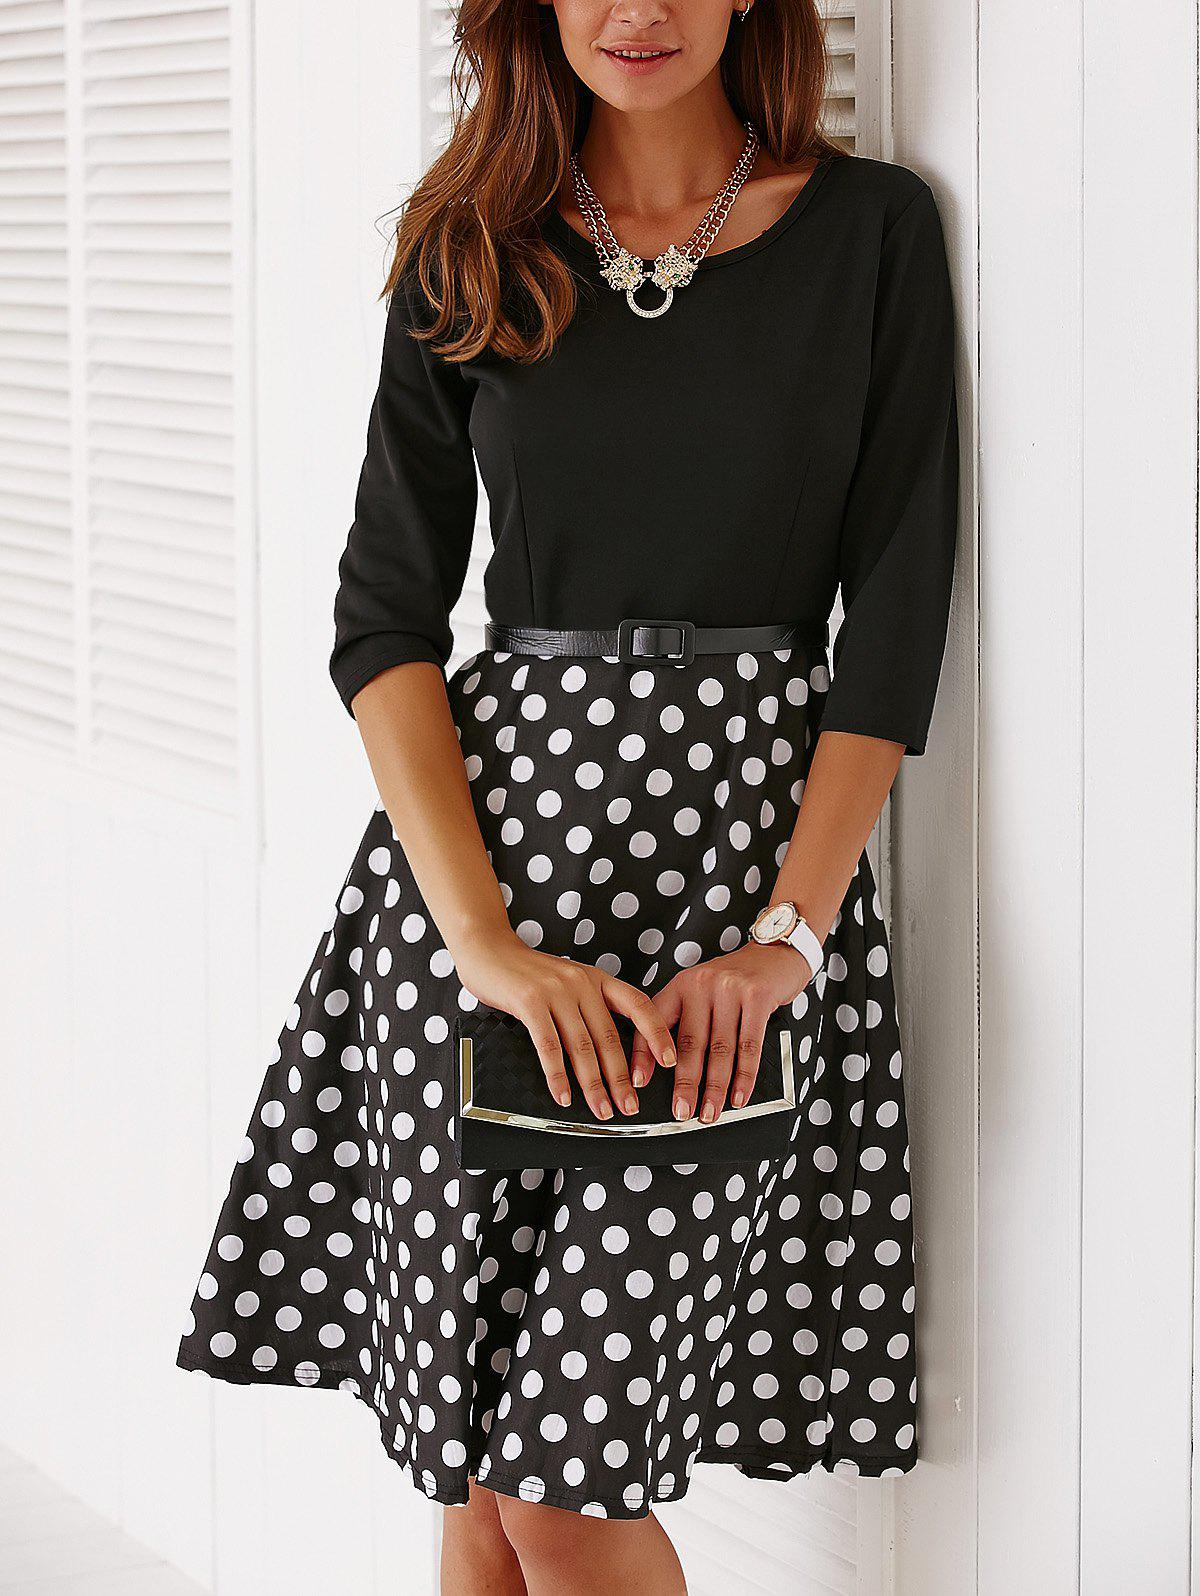 Vintage Belted Knee Length Polka Dot DressWOMEN<br><br>Size: M; Color: BLACK; Style: Vintage; Material: Polyester; Silhouette: A-Line; Dresses Length: Mid-Calf; Neckline: Jewel Neck; Sleeve Length: 3/4 Length Sleeves; Pattern Type: Polka Dot; With Belt: Yes; Season: Summer; Weight: 0.242kg; Package Contents: 1 x Dress  1 x Belt;